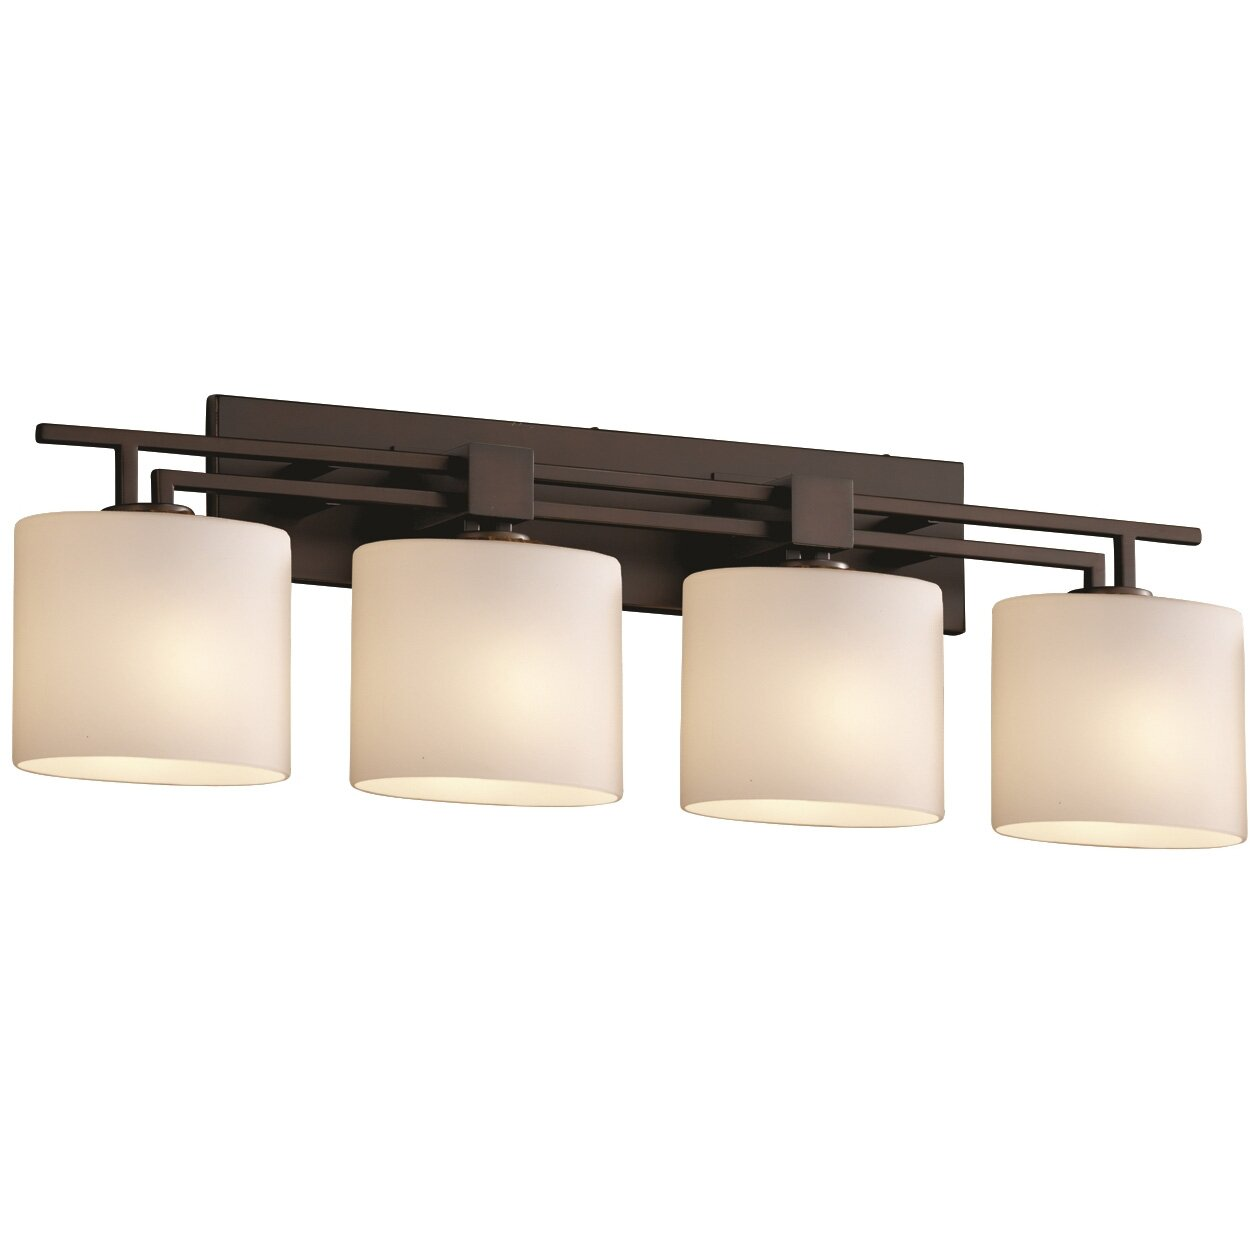 Brayden Studio Luzerne 4 Light Vanity Light & Reviews Wayfair